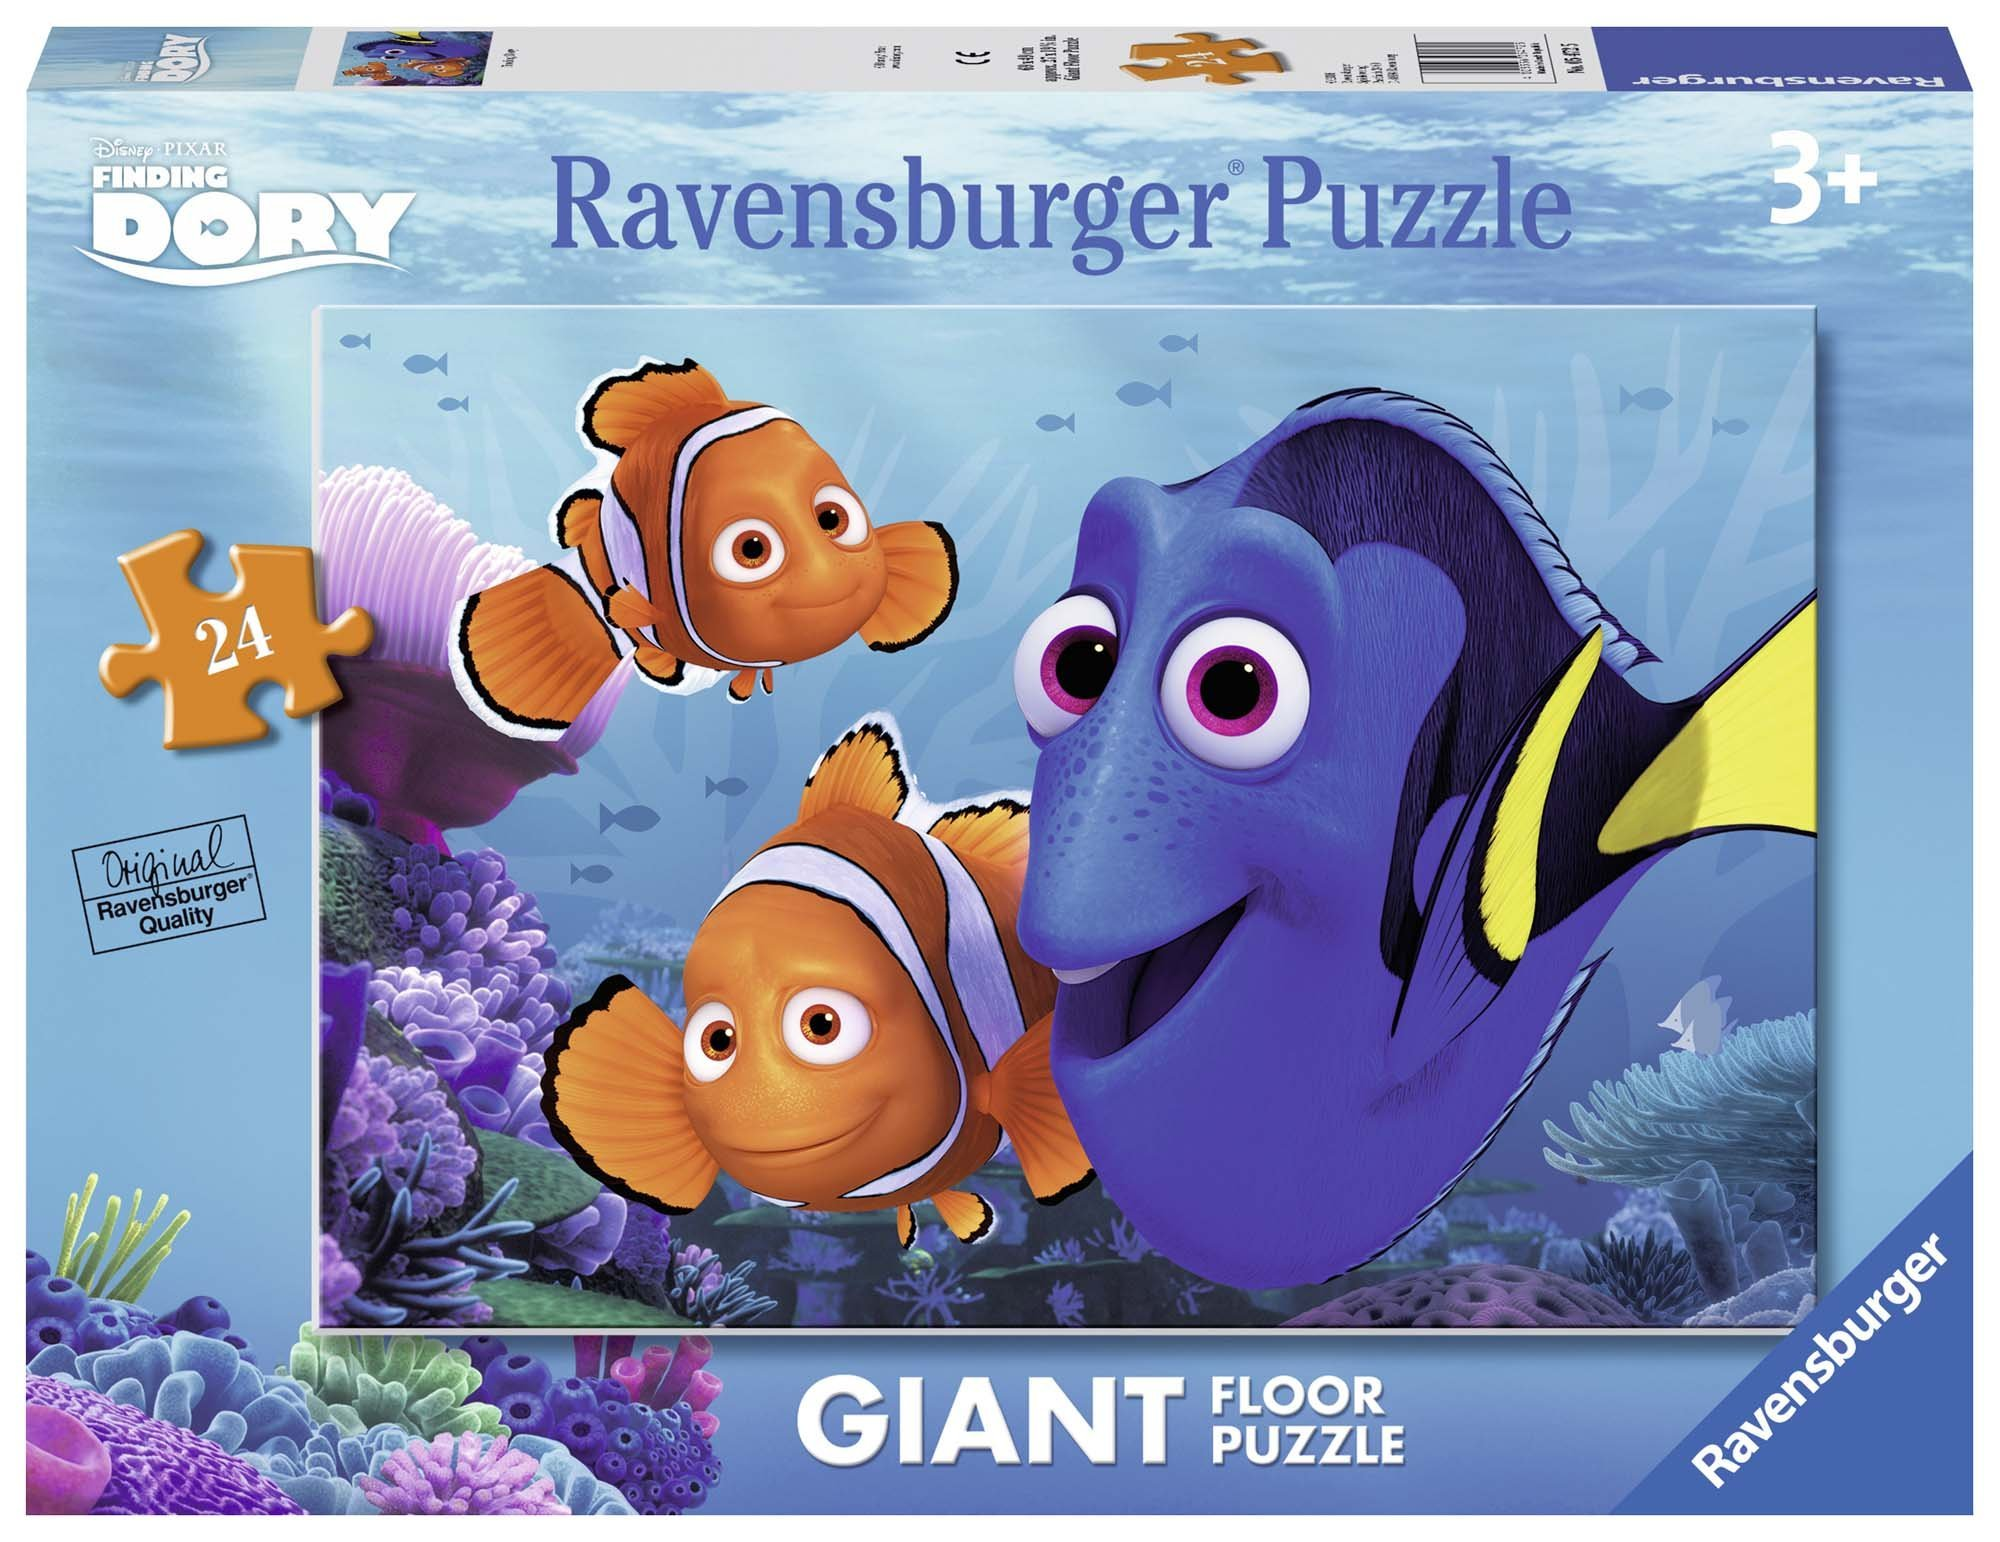 Ravensburger Finding Dory Floor Puzzle 24 Piece Jigsaw Puzzle for Kids - Every Piece is Unique, Pieces Fit Together Perfectly by Ravensburger